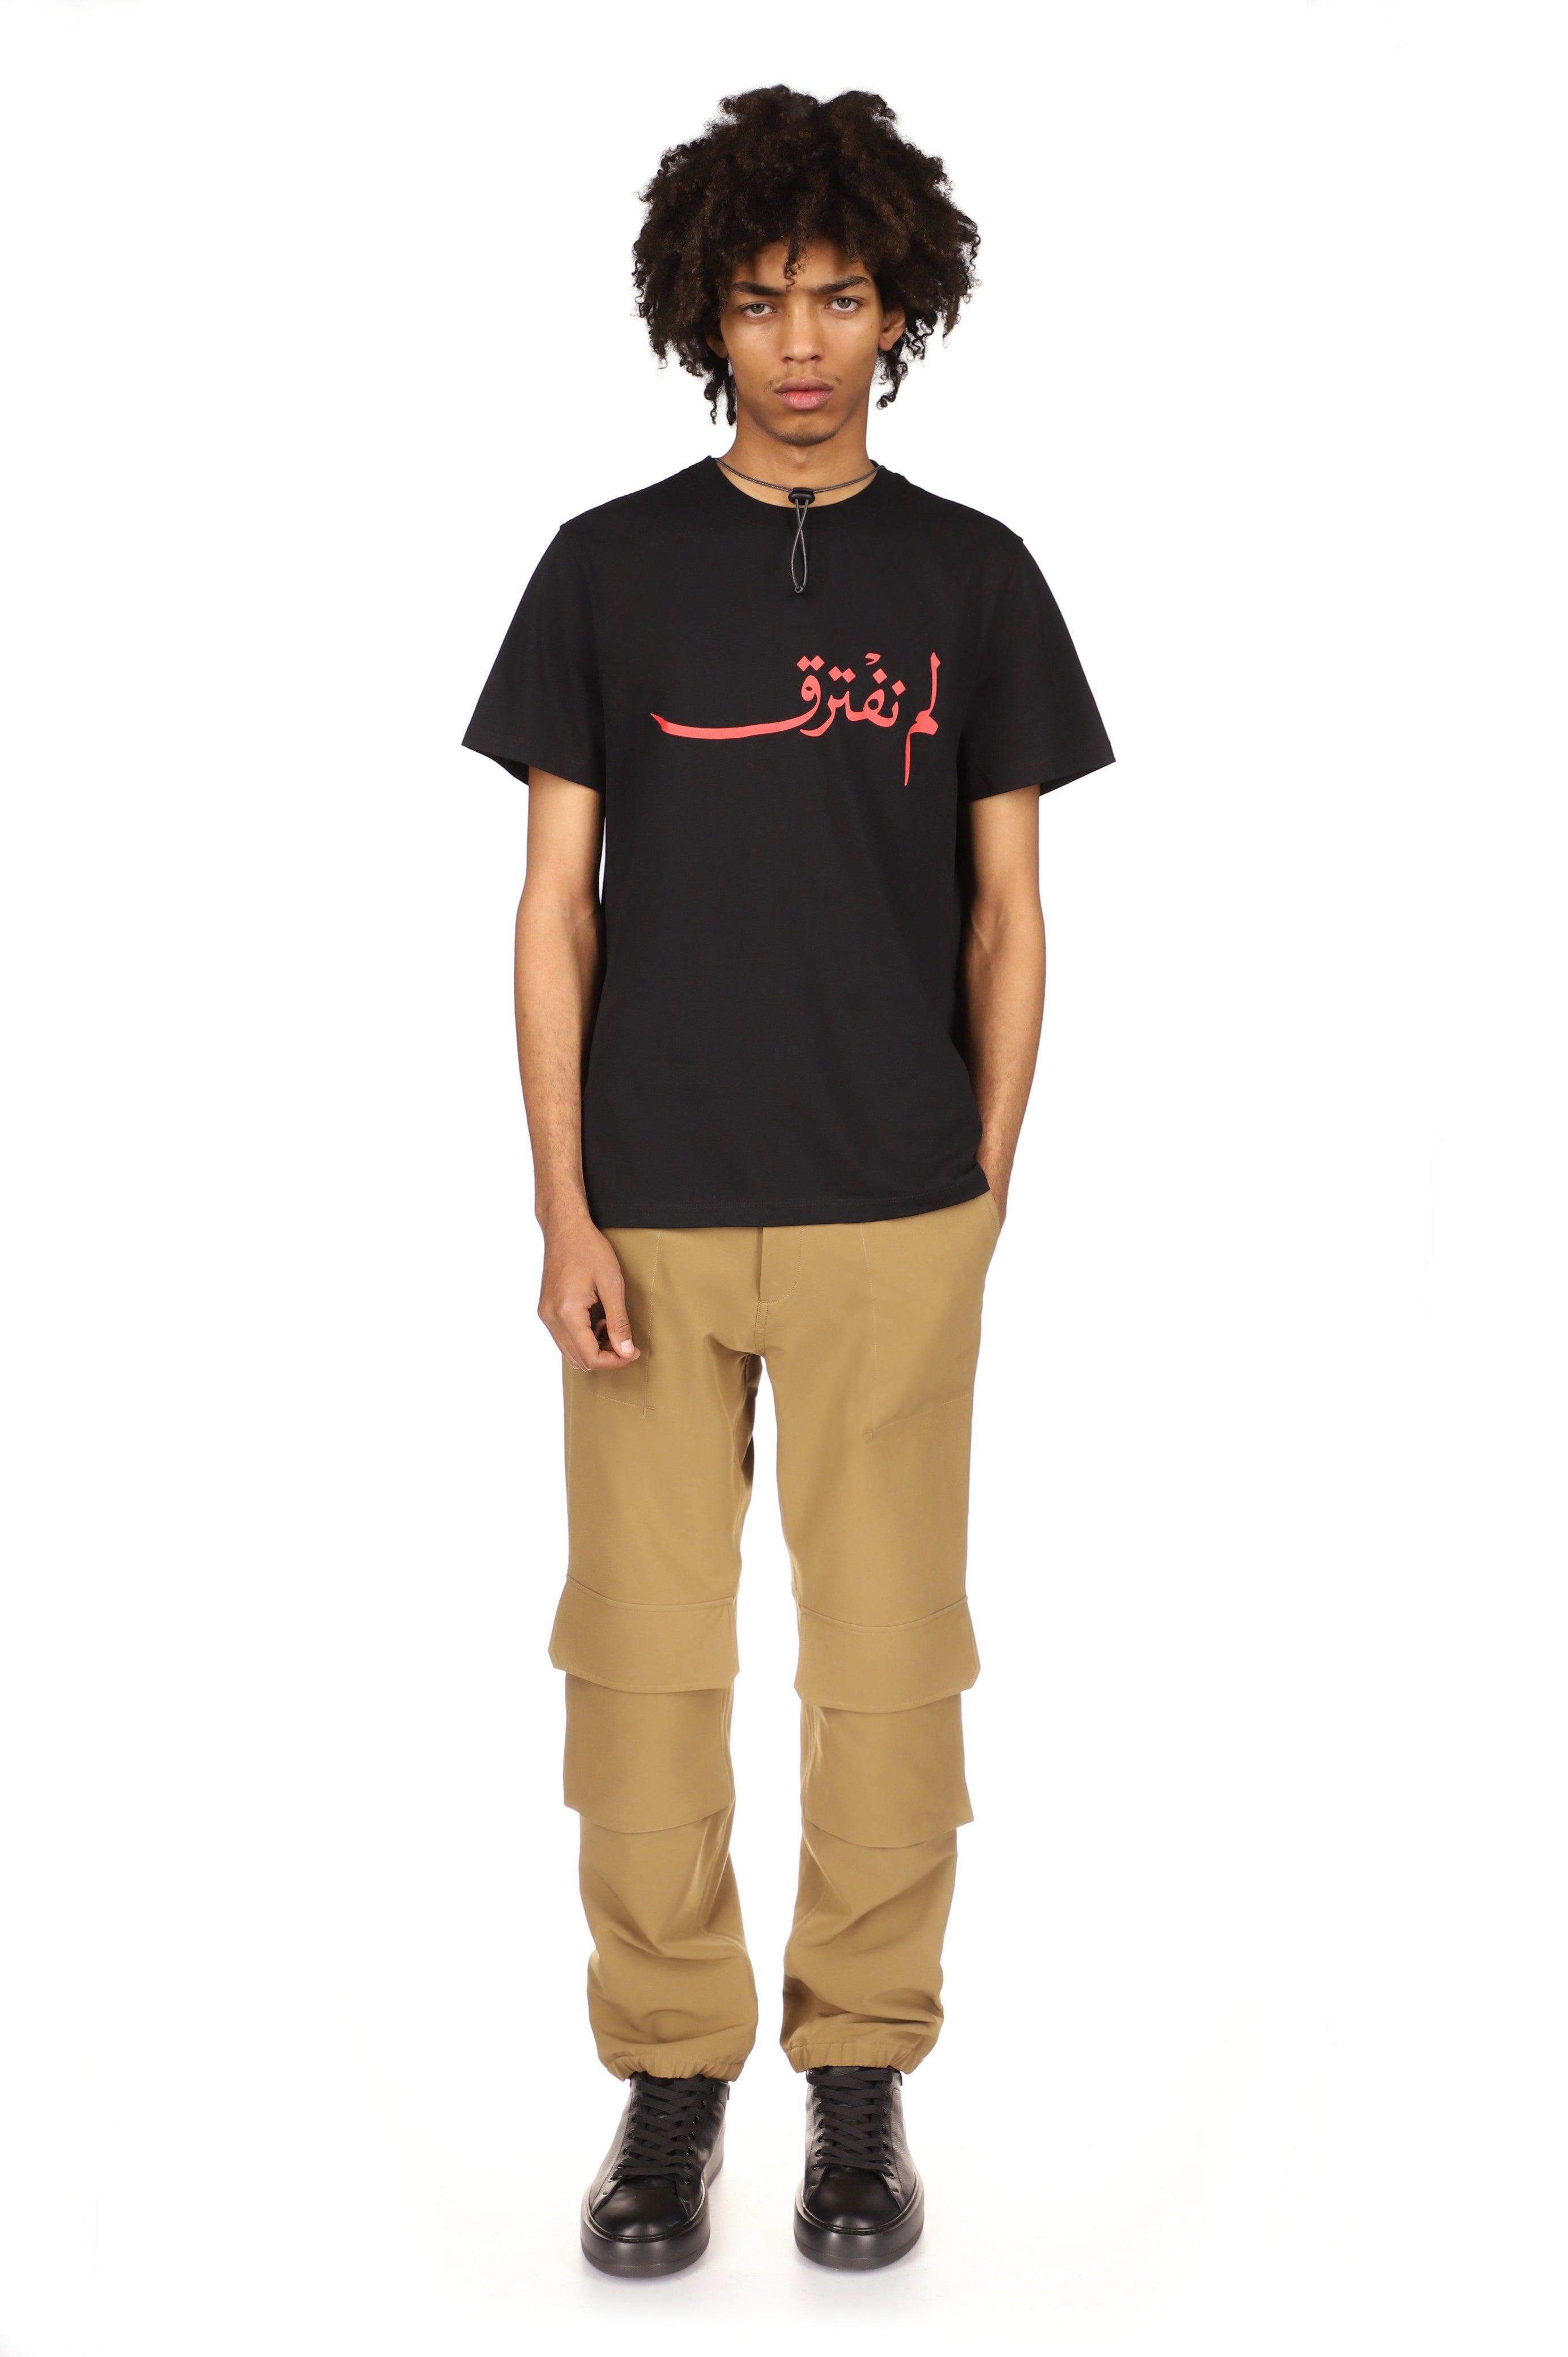 HIDD SINGLE JERSEY T-SHIRT